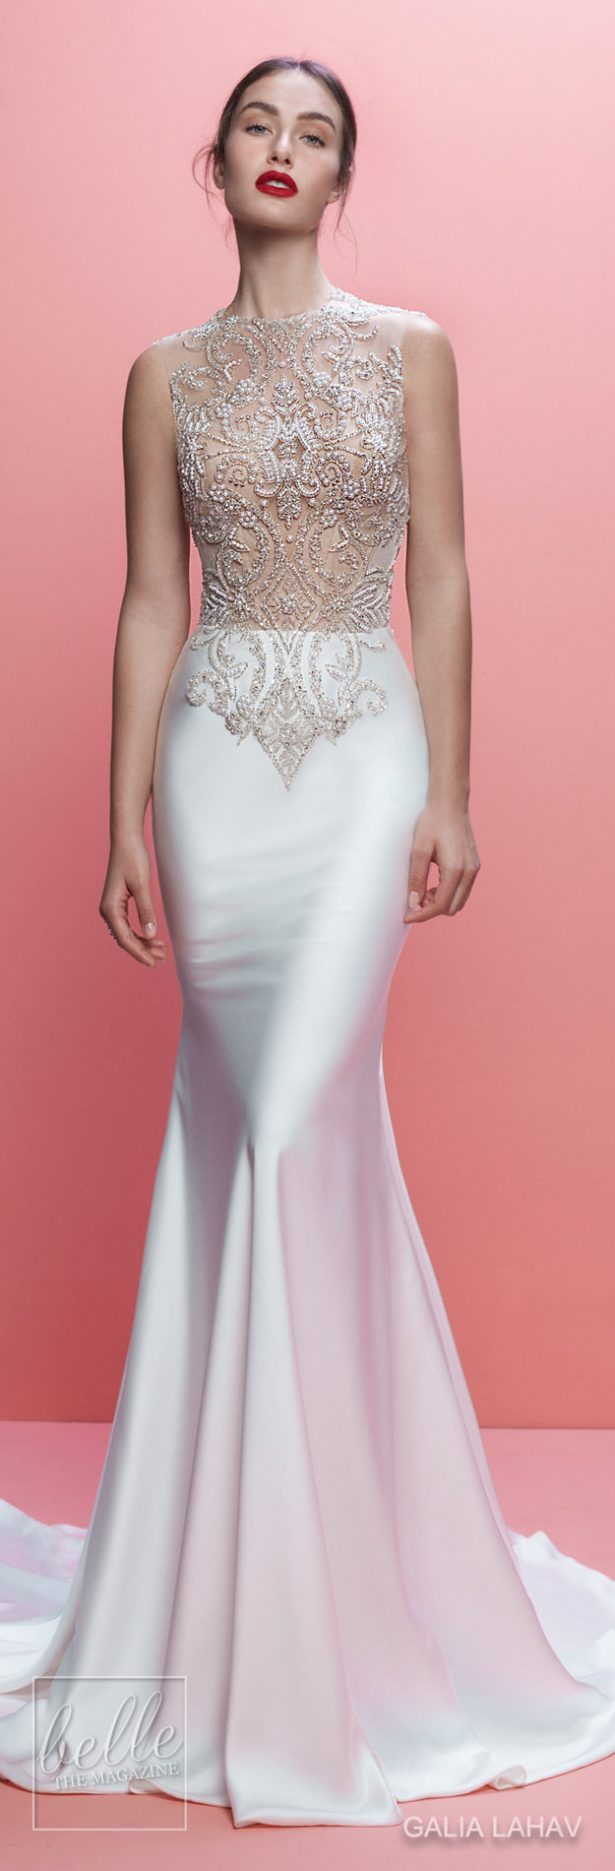 Wedding Dresses By Galia Lahav Couture Bridal Spring 2019 Collection- Queen of Hearts - Emersyn